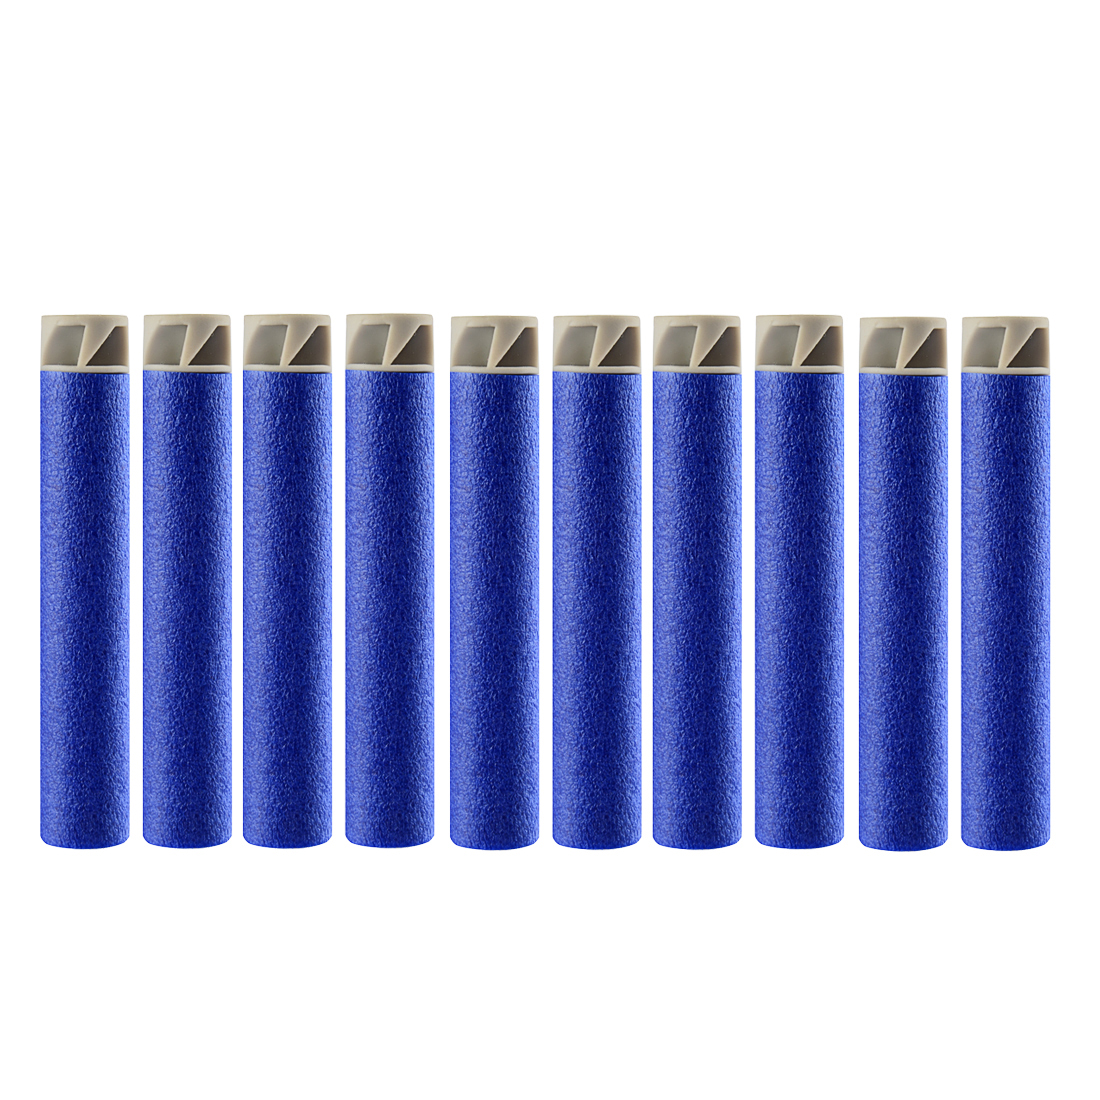 50/100 Pcs 7.4 Soft Bullet Airguns EVA Flat Soft Head Foam Bullets Darts For Nerf Blaster Toy N-Strike Elite Series Accessories